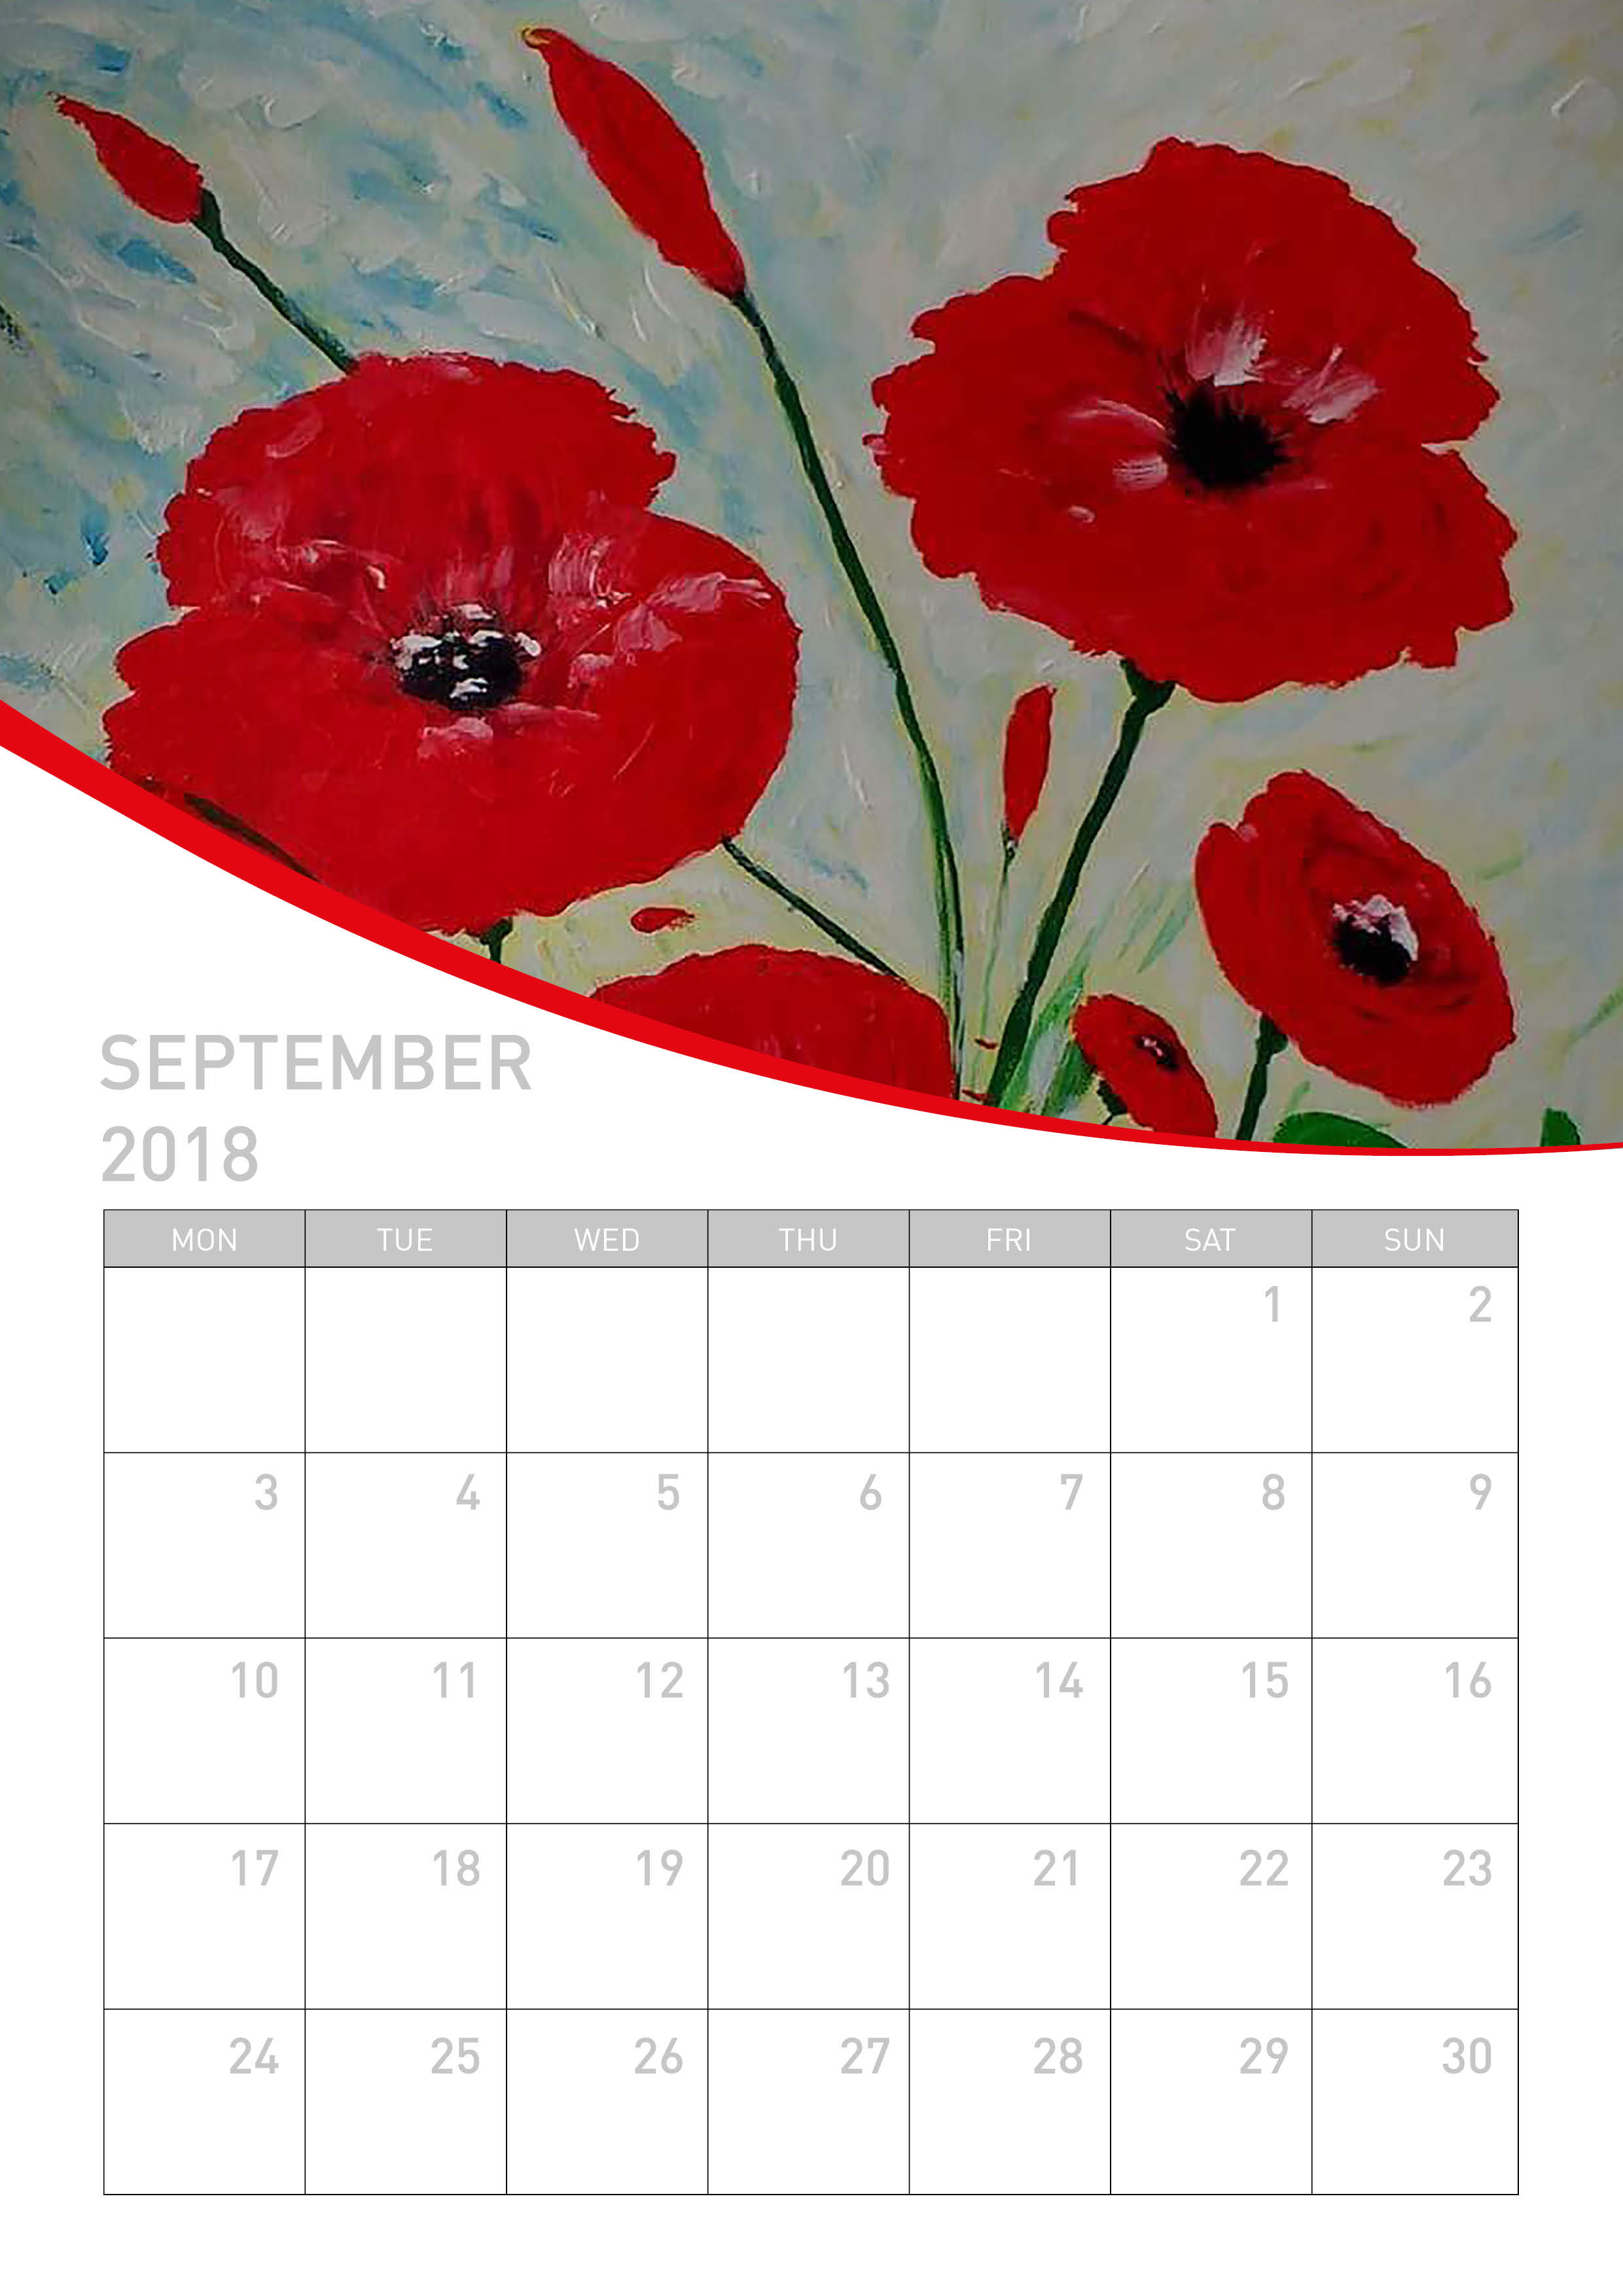 Poppy Calendar on sale for a good cause